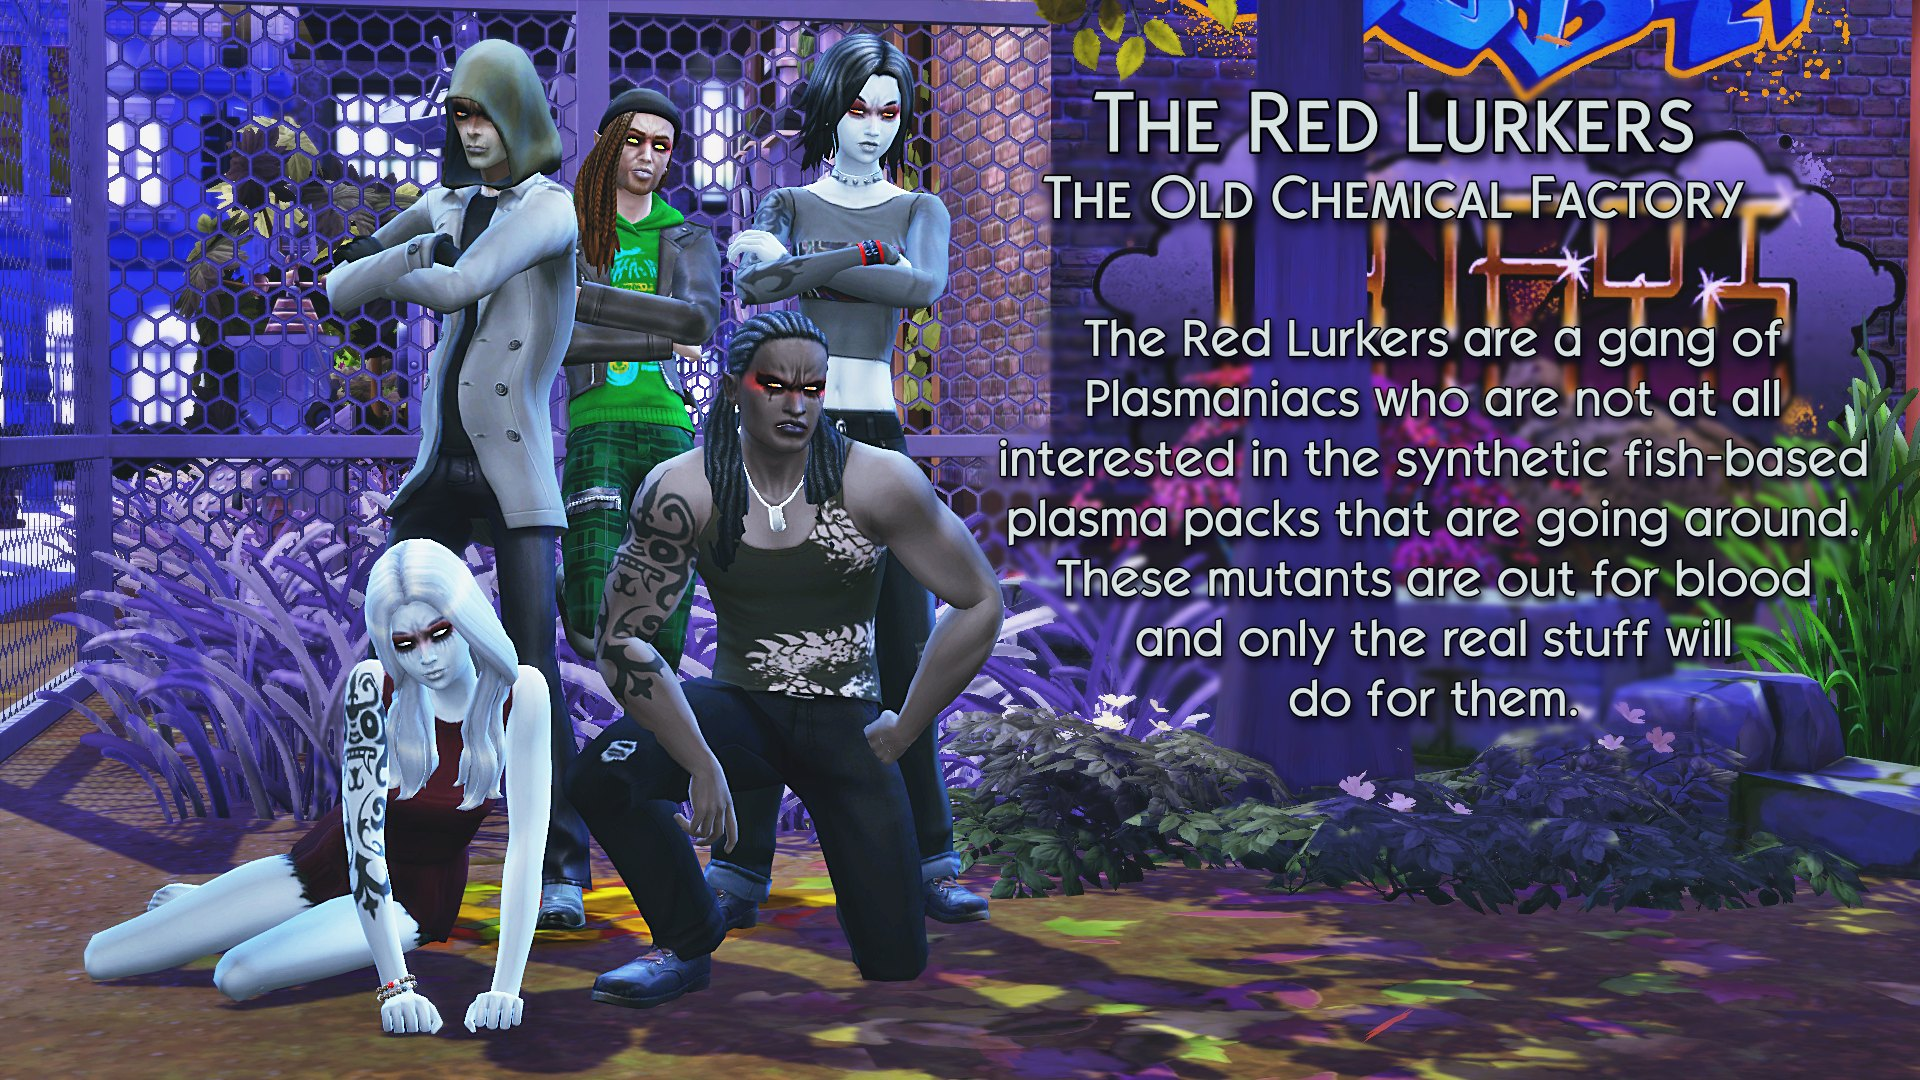 5 Red Lurkers at the Old Chemical Factory